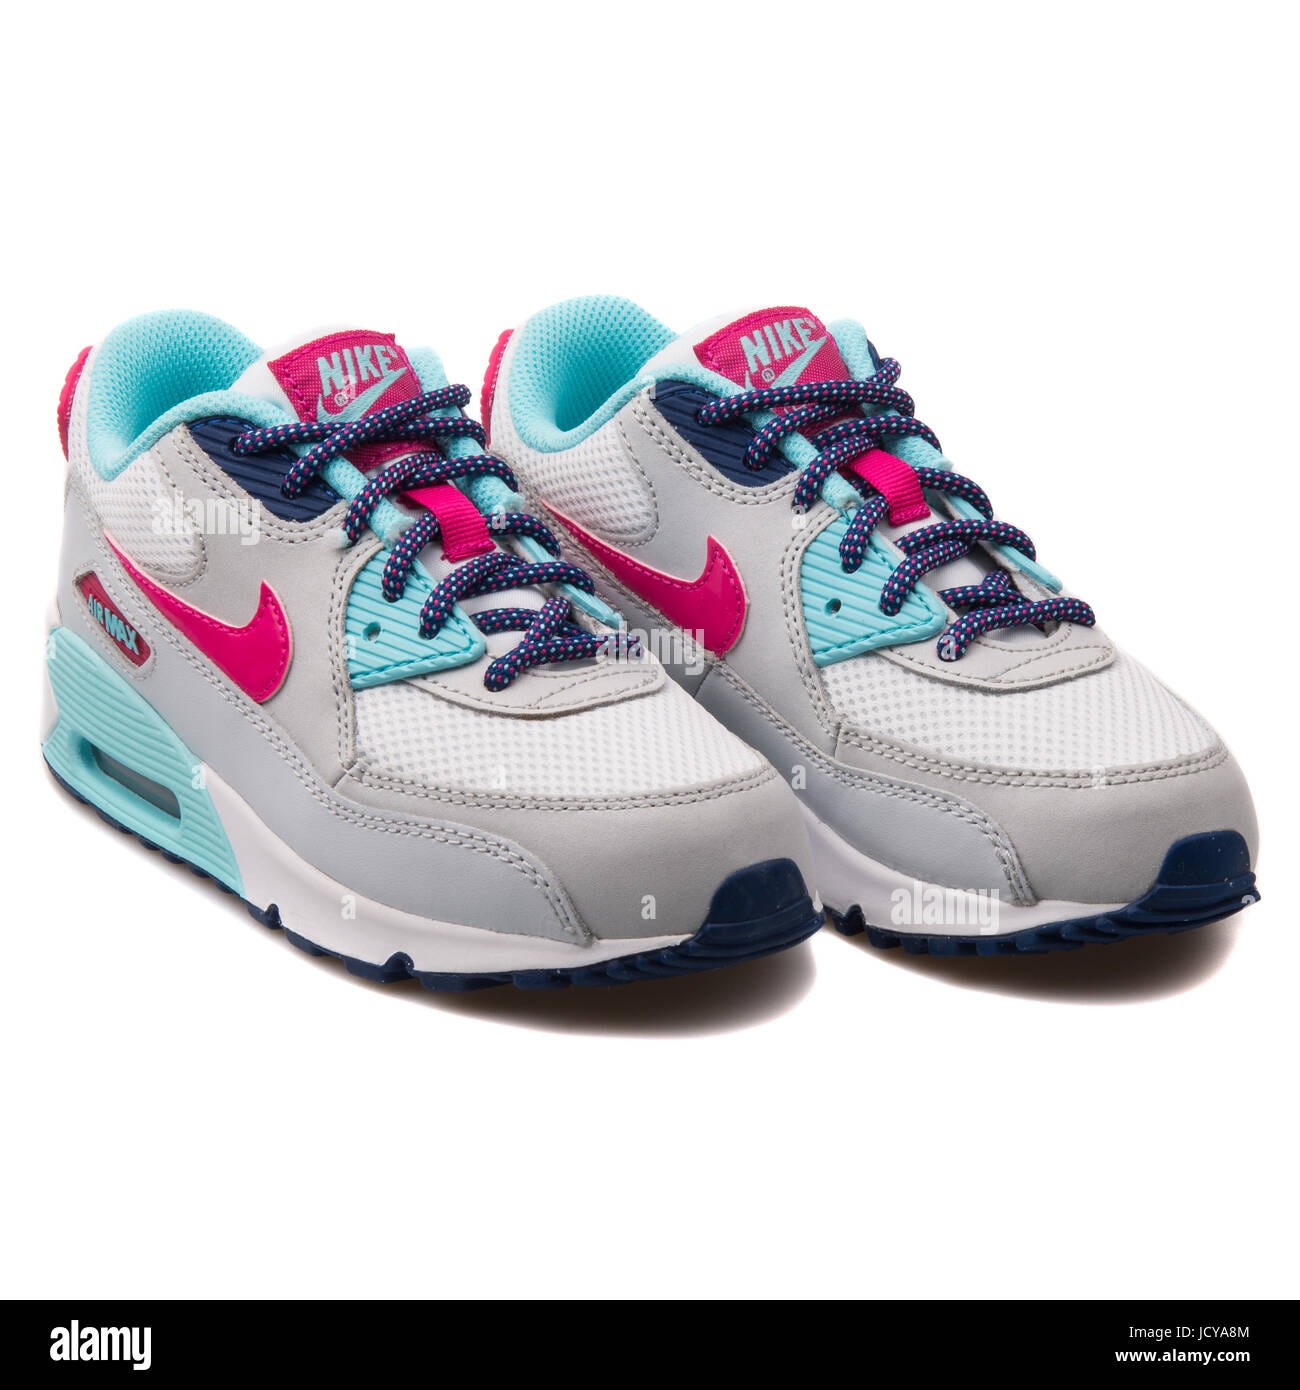 size 40 912e9 ad232 Nike Air Max 90 Mesh (PS) White, Grey, Pink and Turquoise Kids Running Shoes  - 724856-102